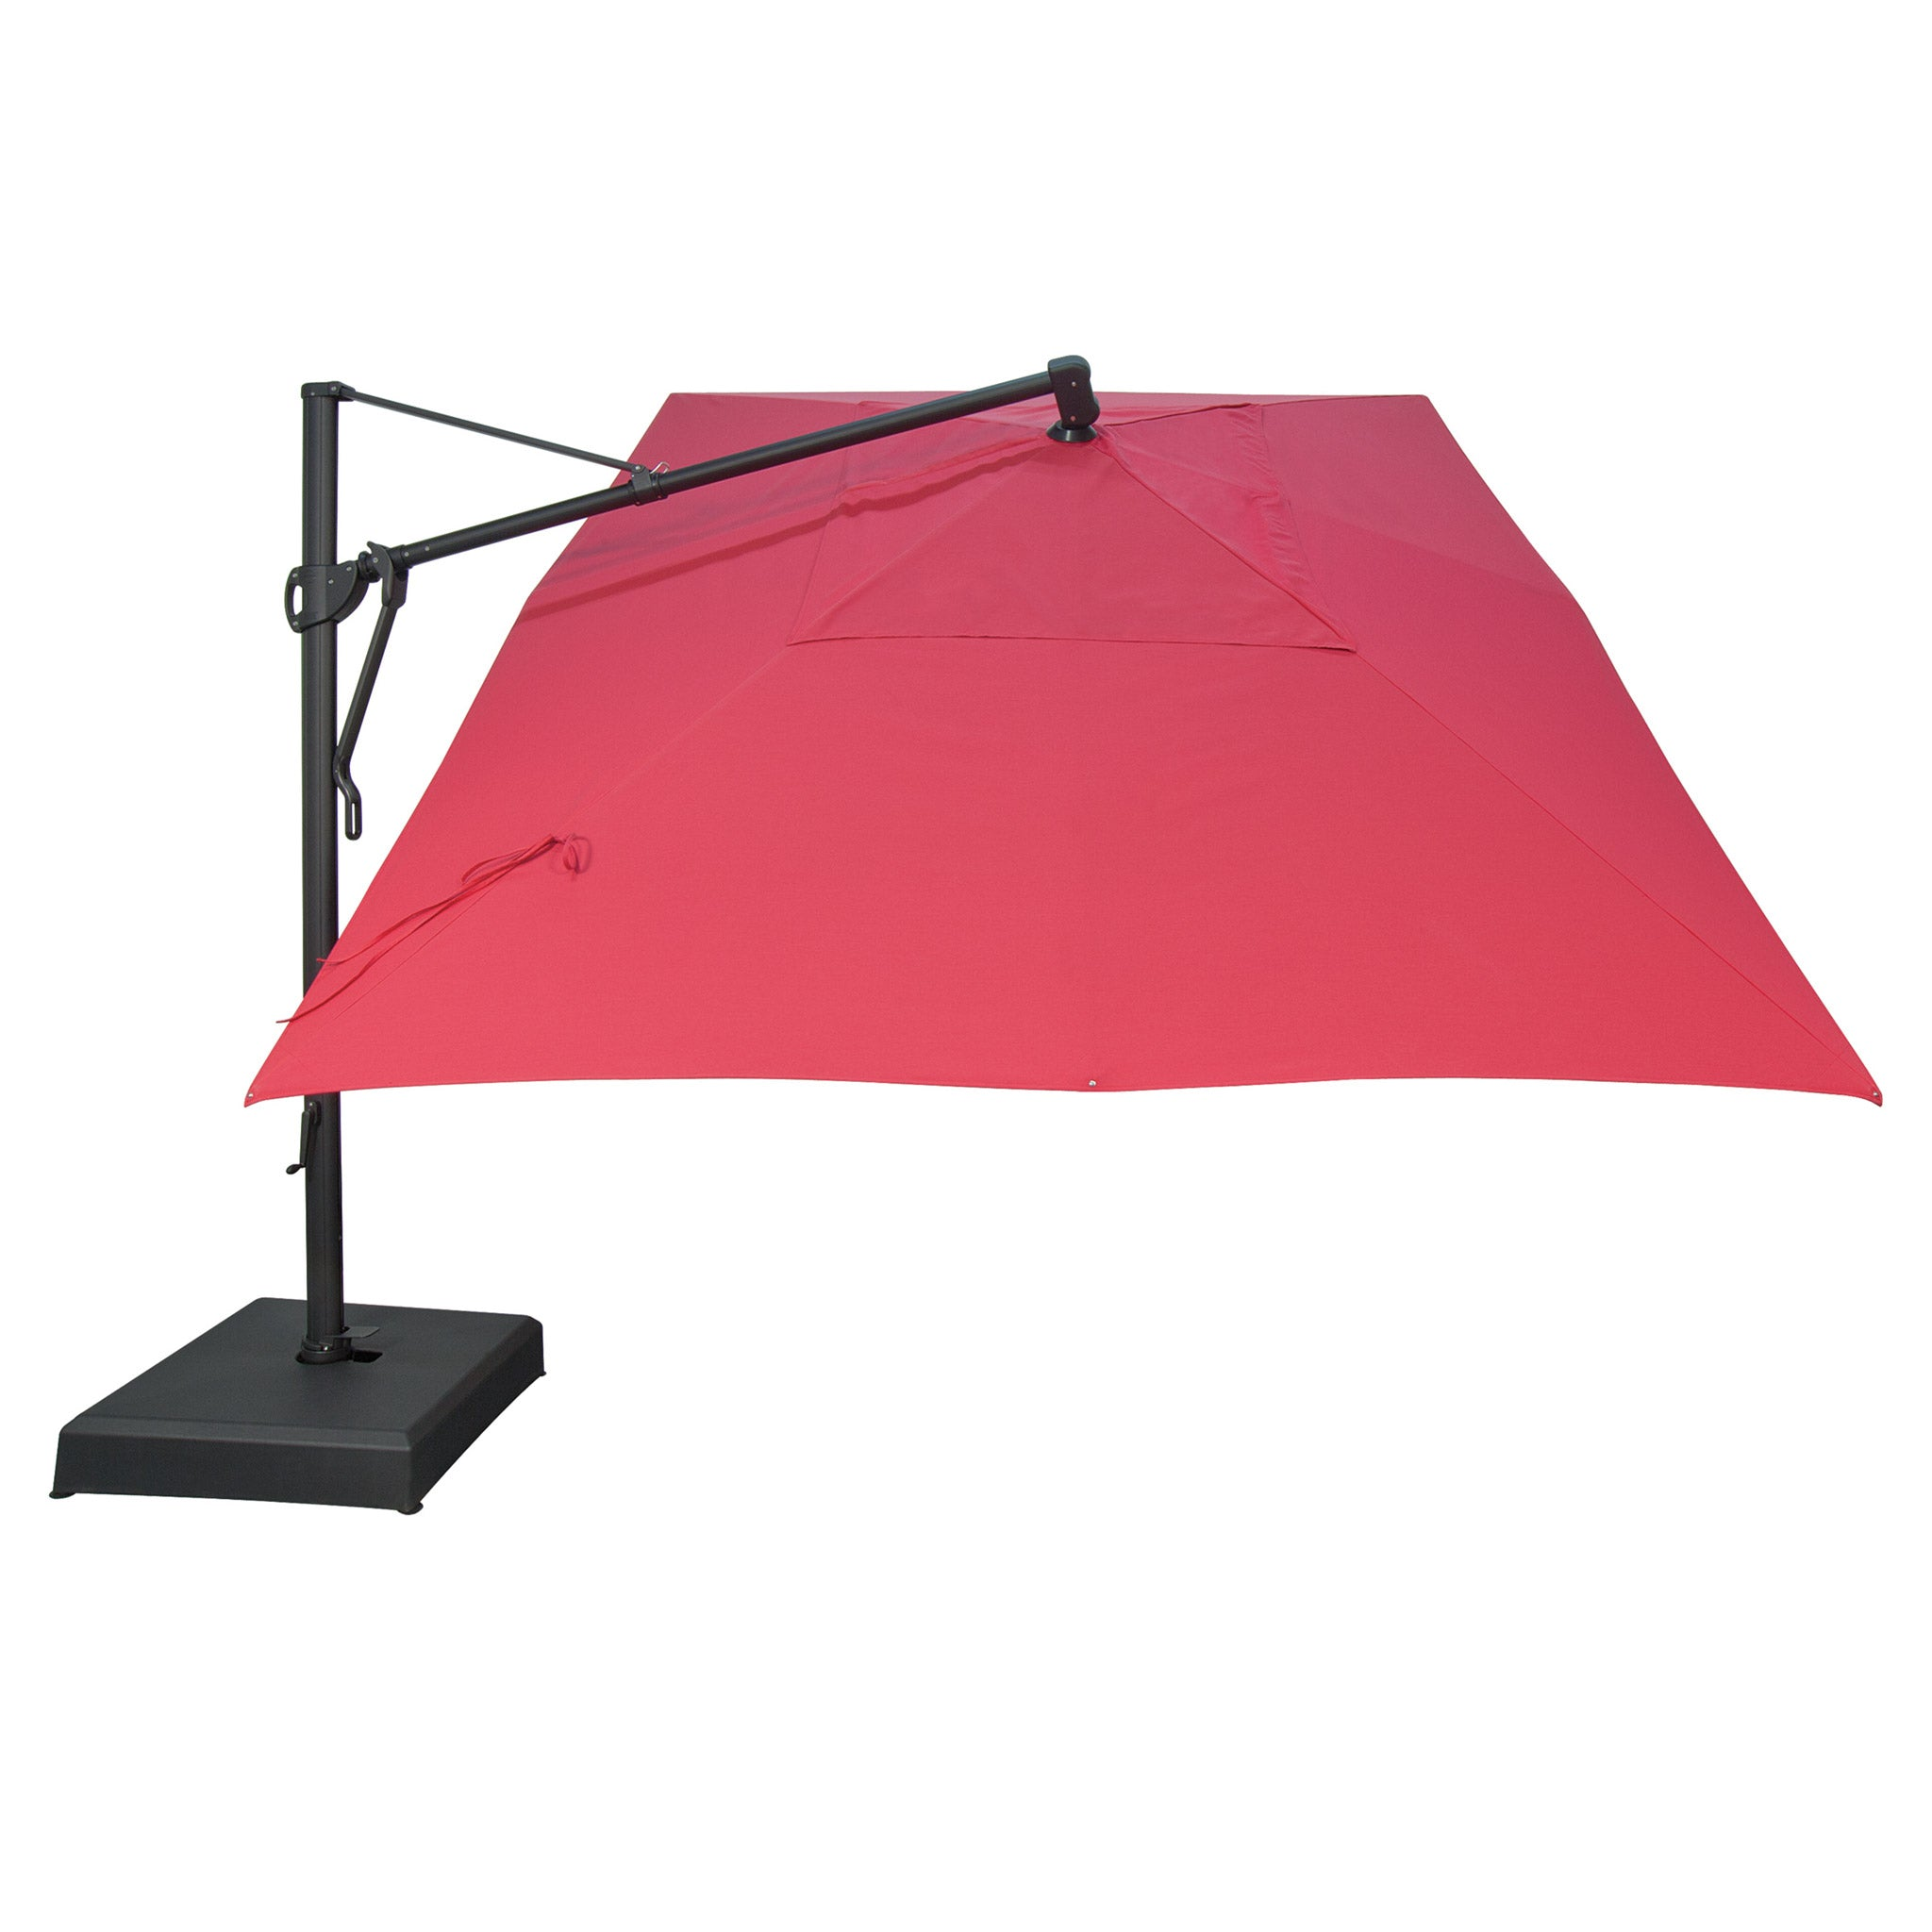 10' X 13' AKZ Cantilever Umbrella